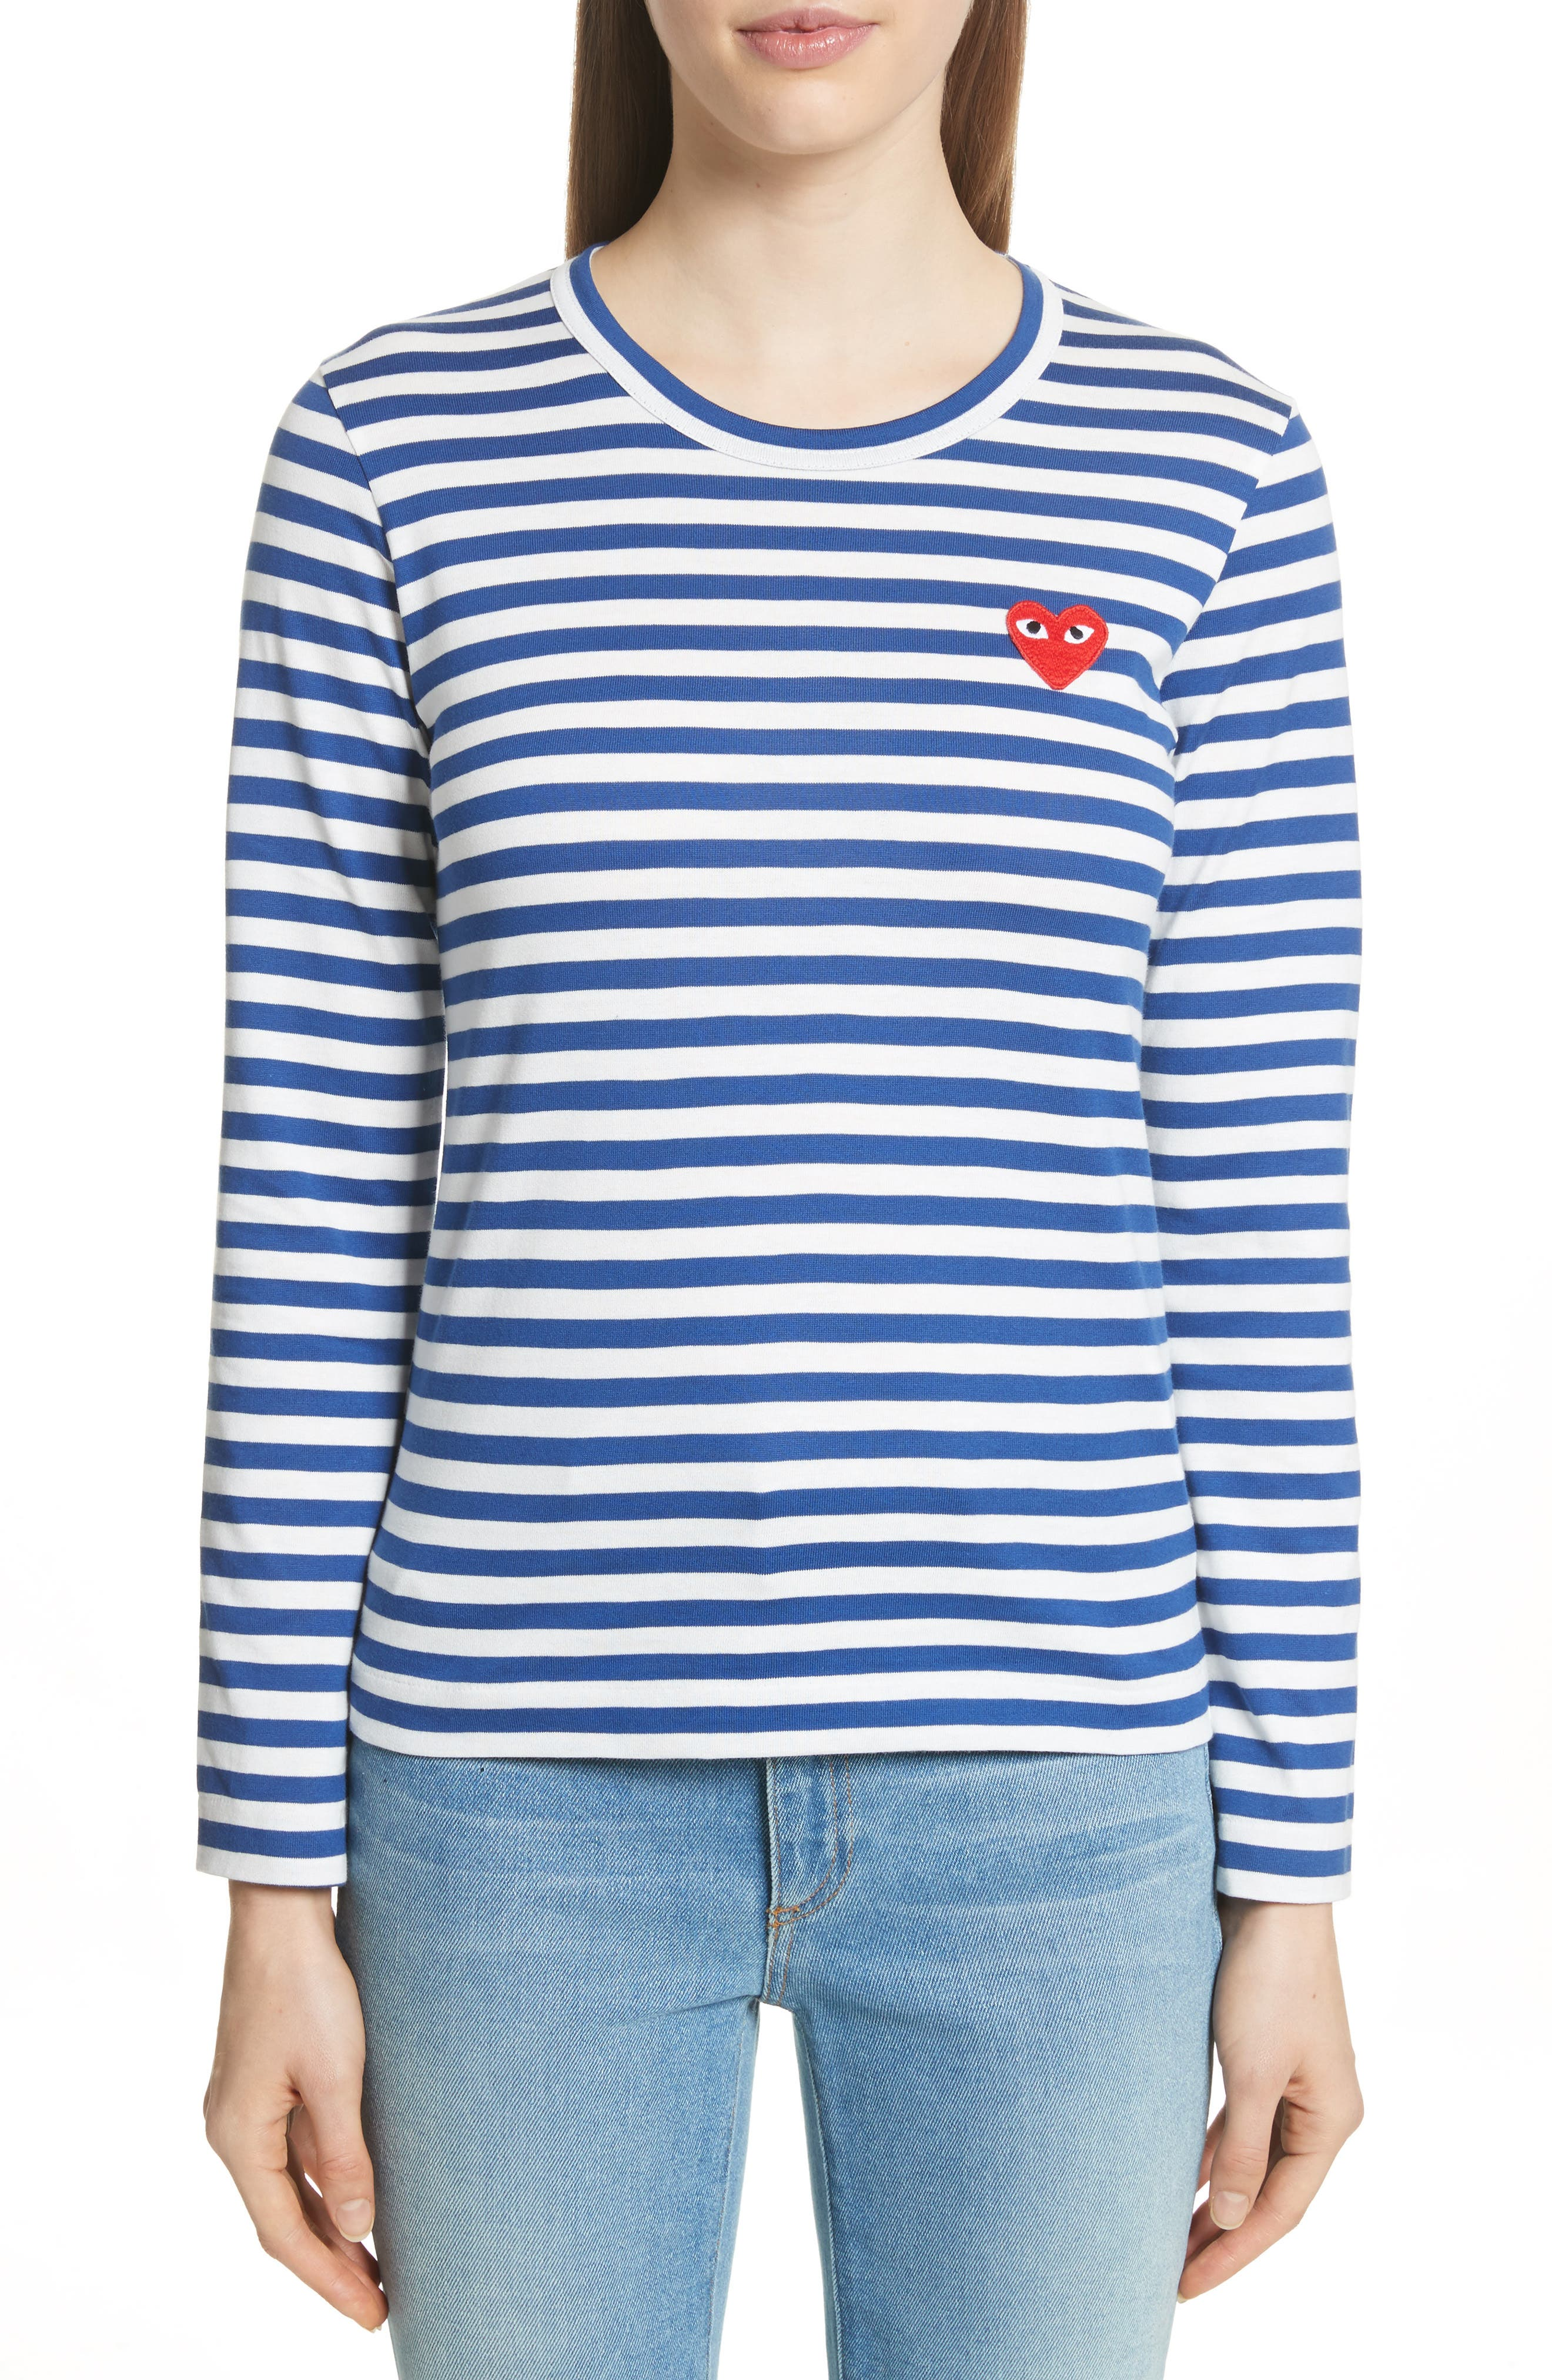 Comme des Garçons PLAY Stripe Cotton Tee,                             Main thumbnail 1, color,                             Navy/ White